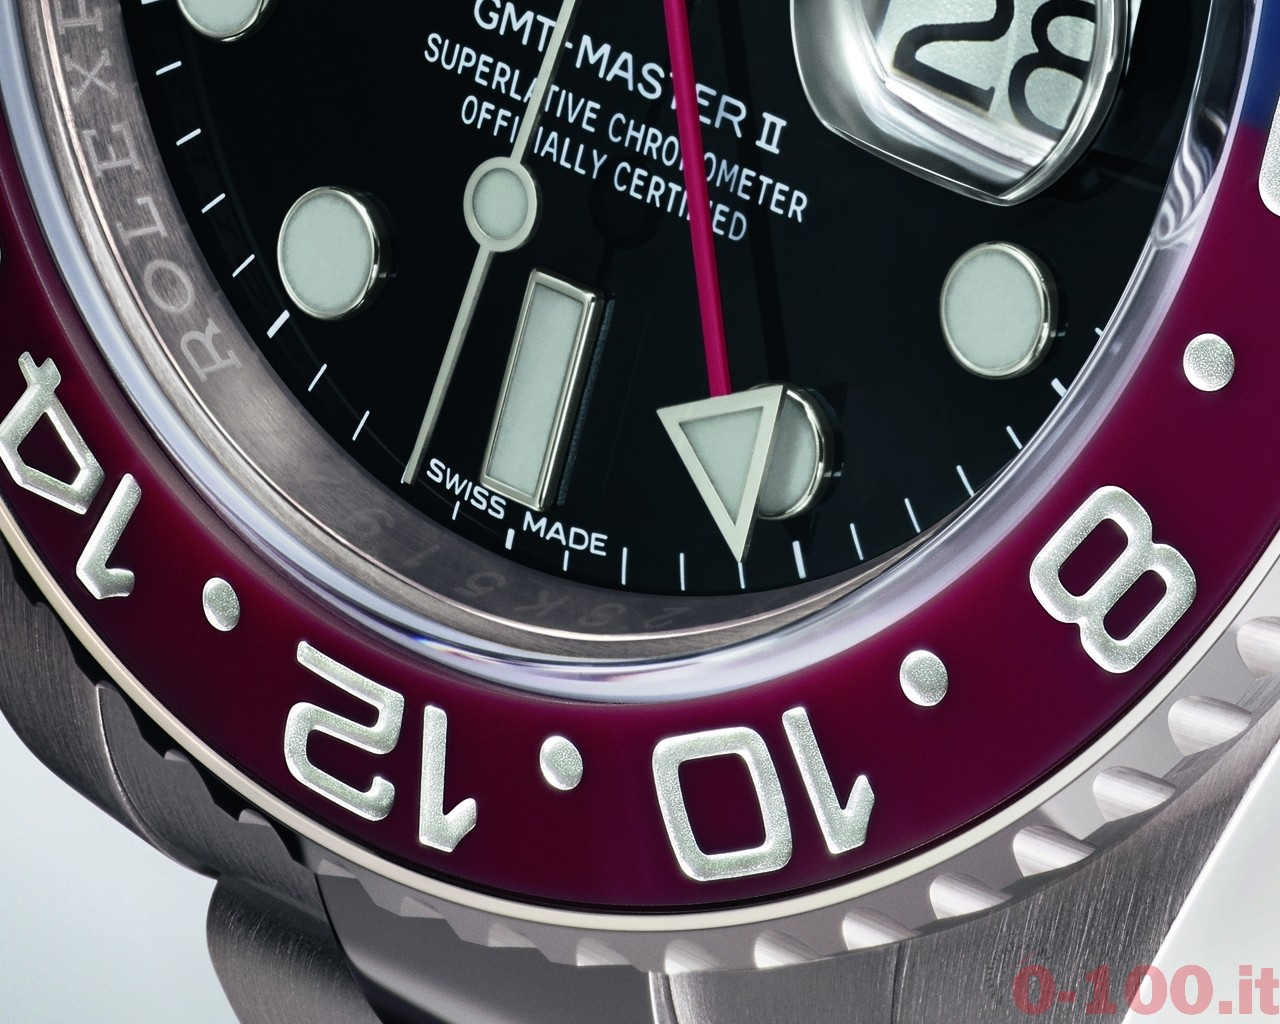 Baselworld 2014: Rolex Oyster Perpetual GMT Master II ...